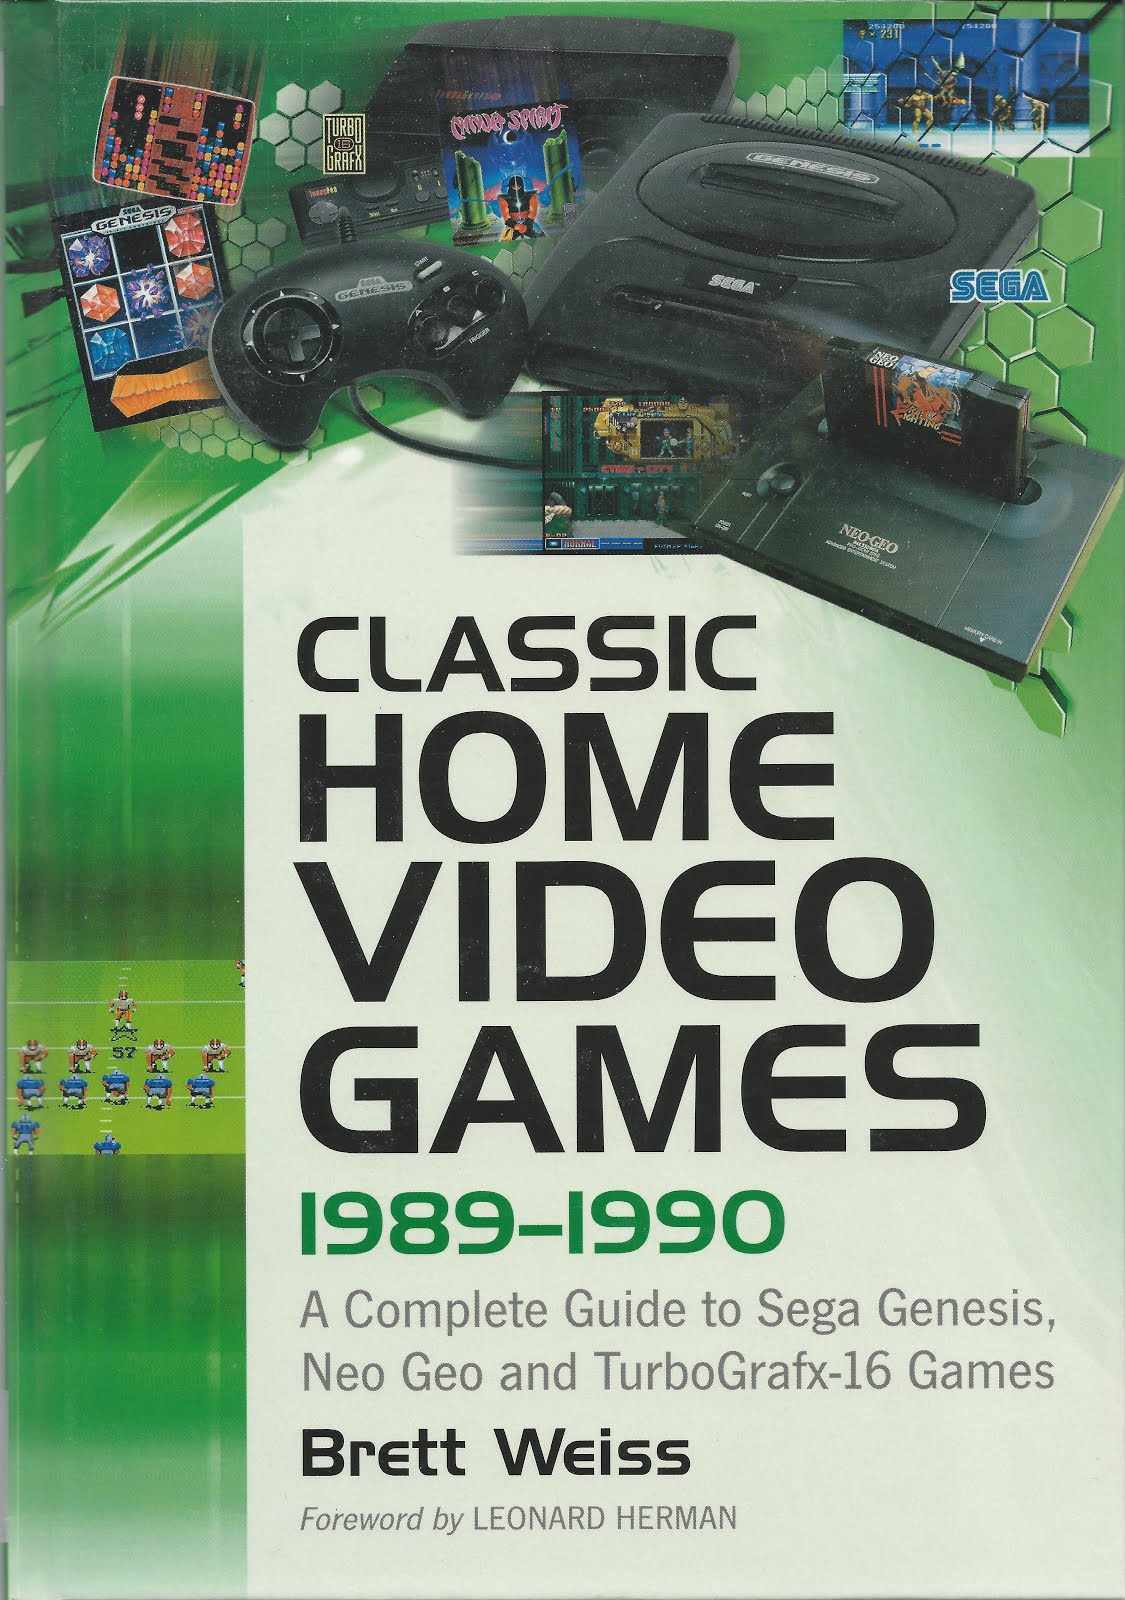 ORDER NOW: Sega Genesis Book